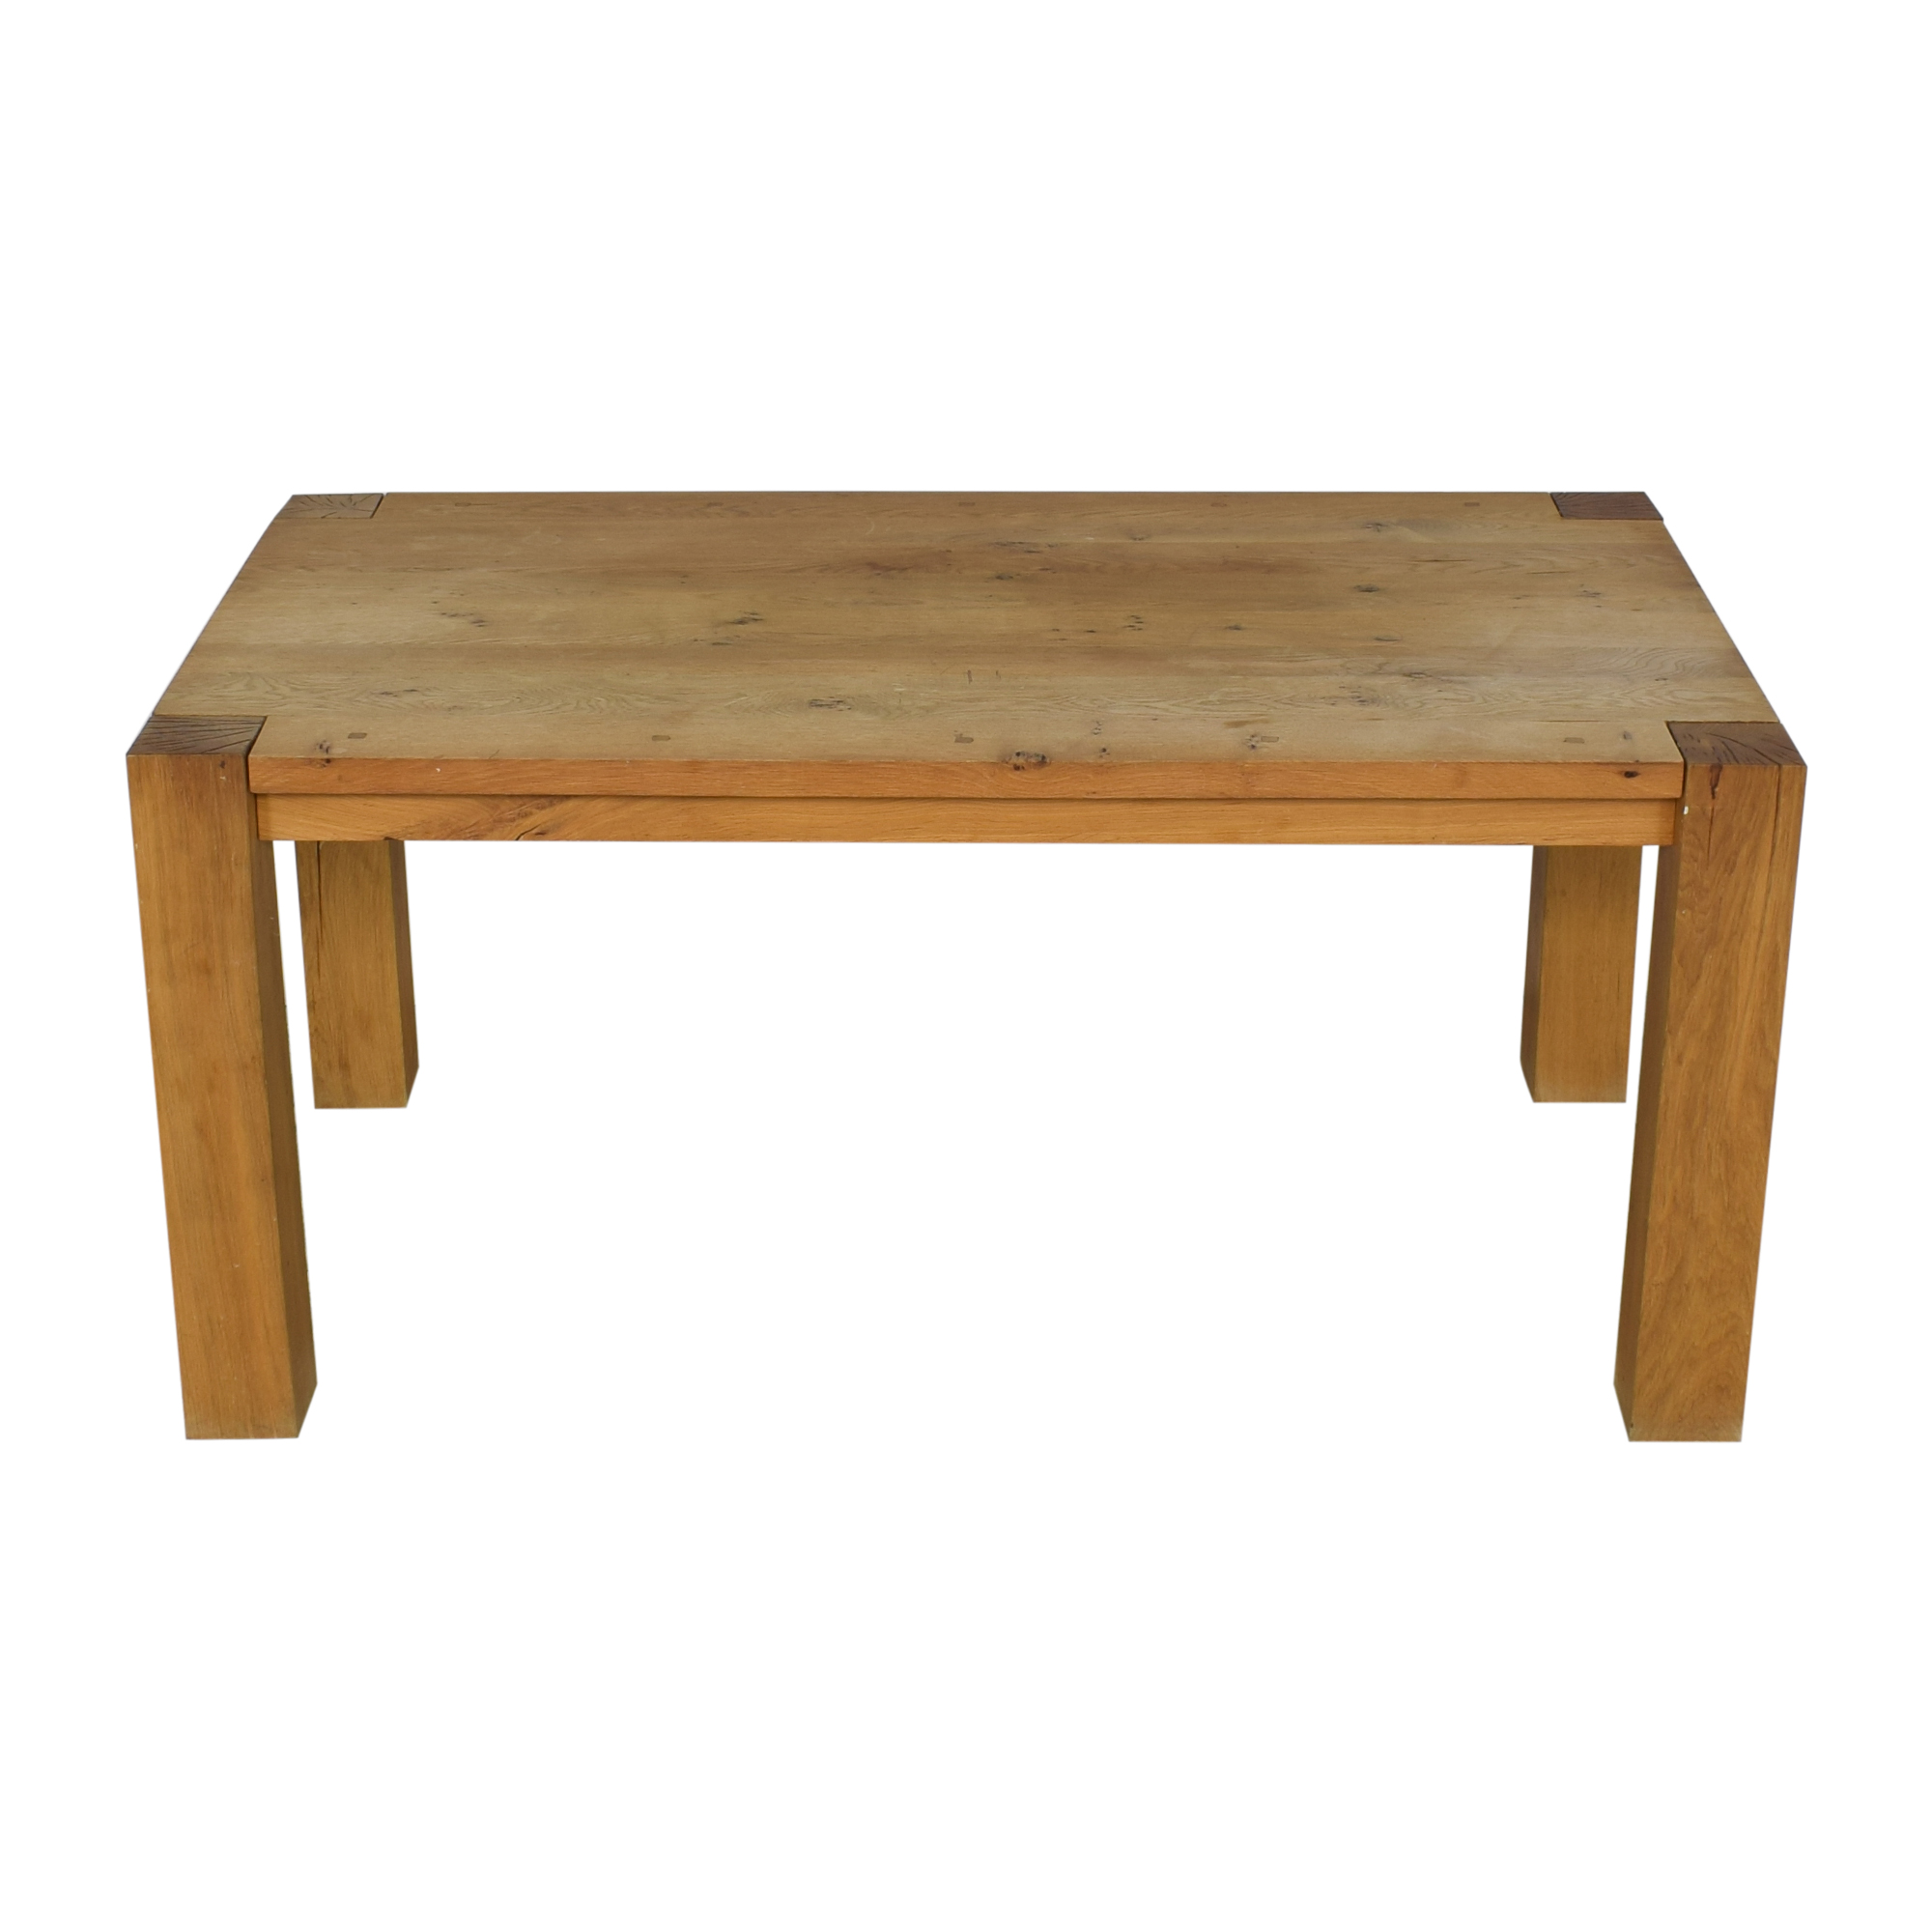 Crate & Barrel Crate & Barrel Big Sur Dining Table discount